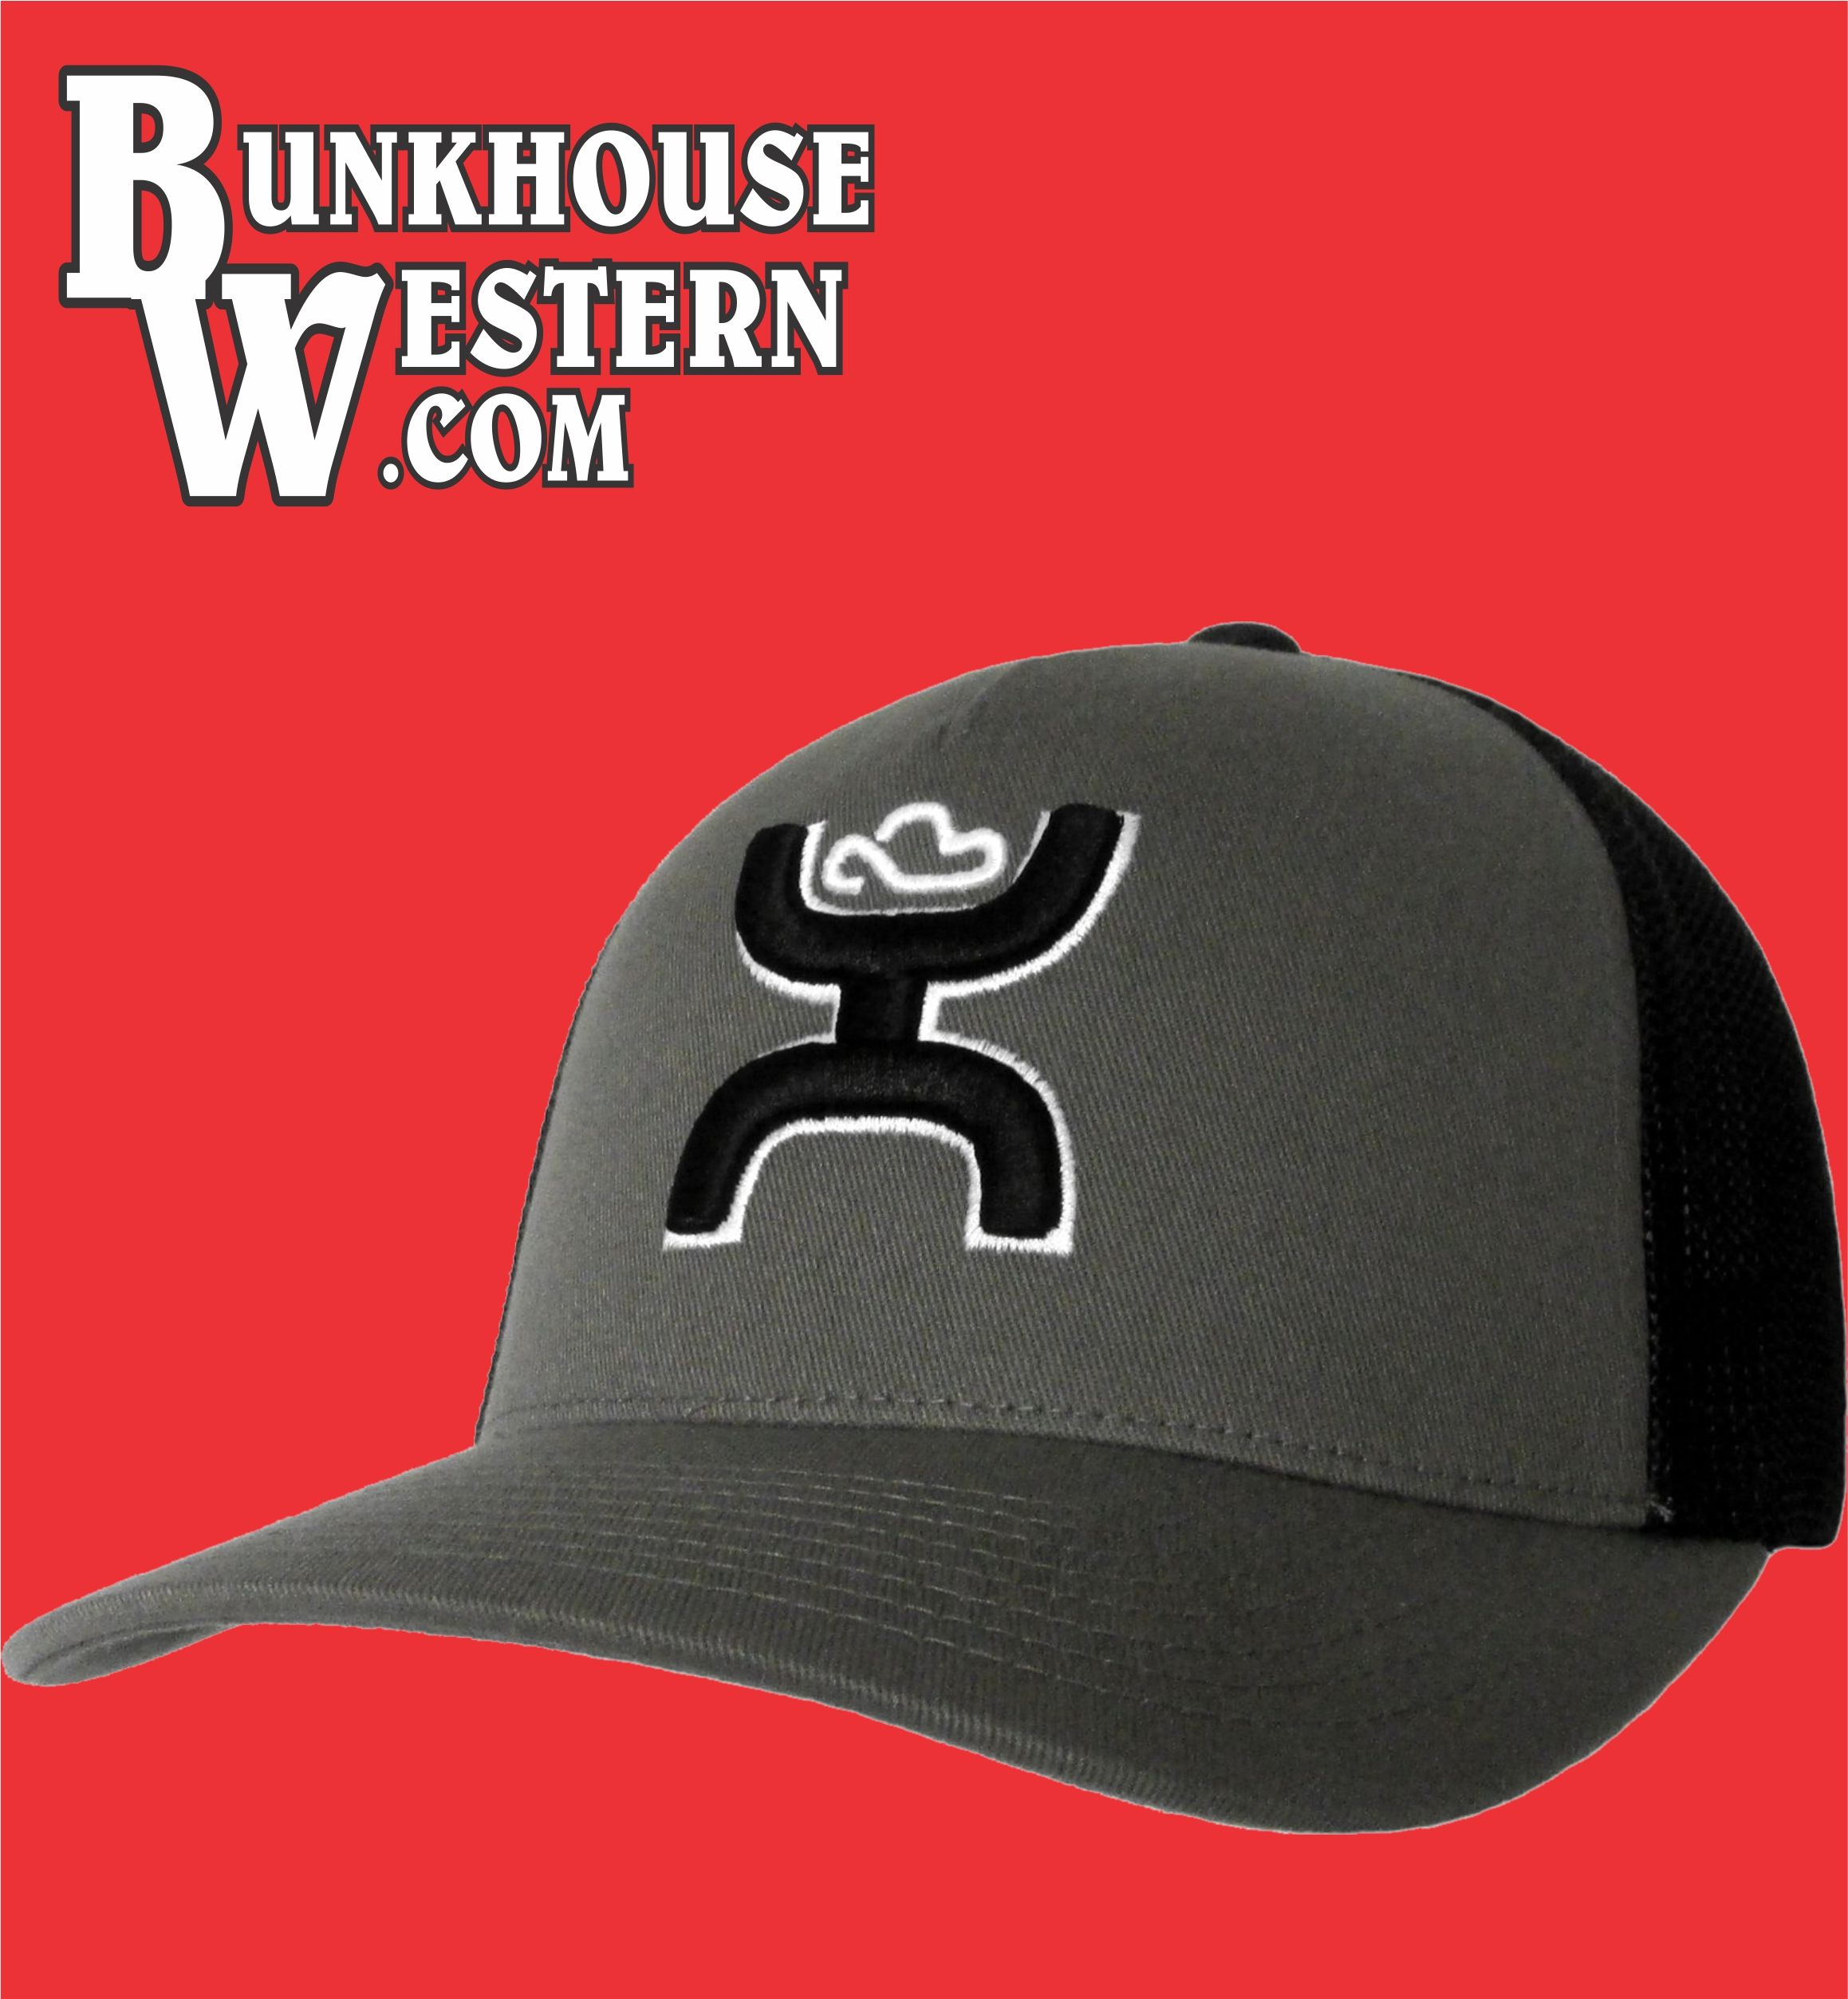 Pin by BunkhouseWestern Com on HOOey | Cowgirl hats, Cowboy